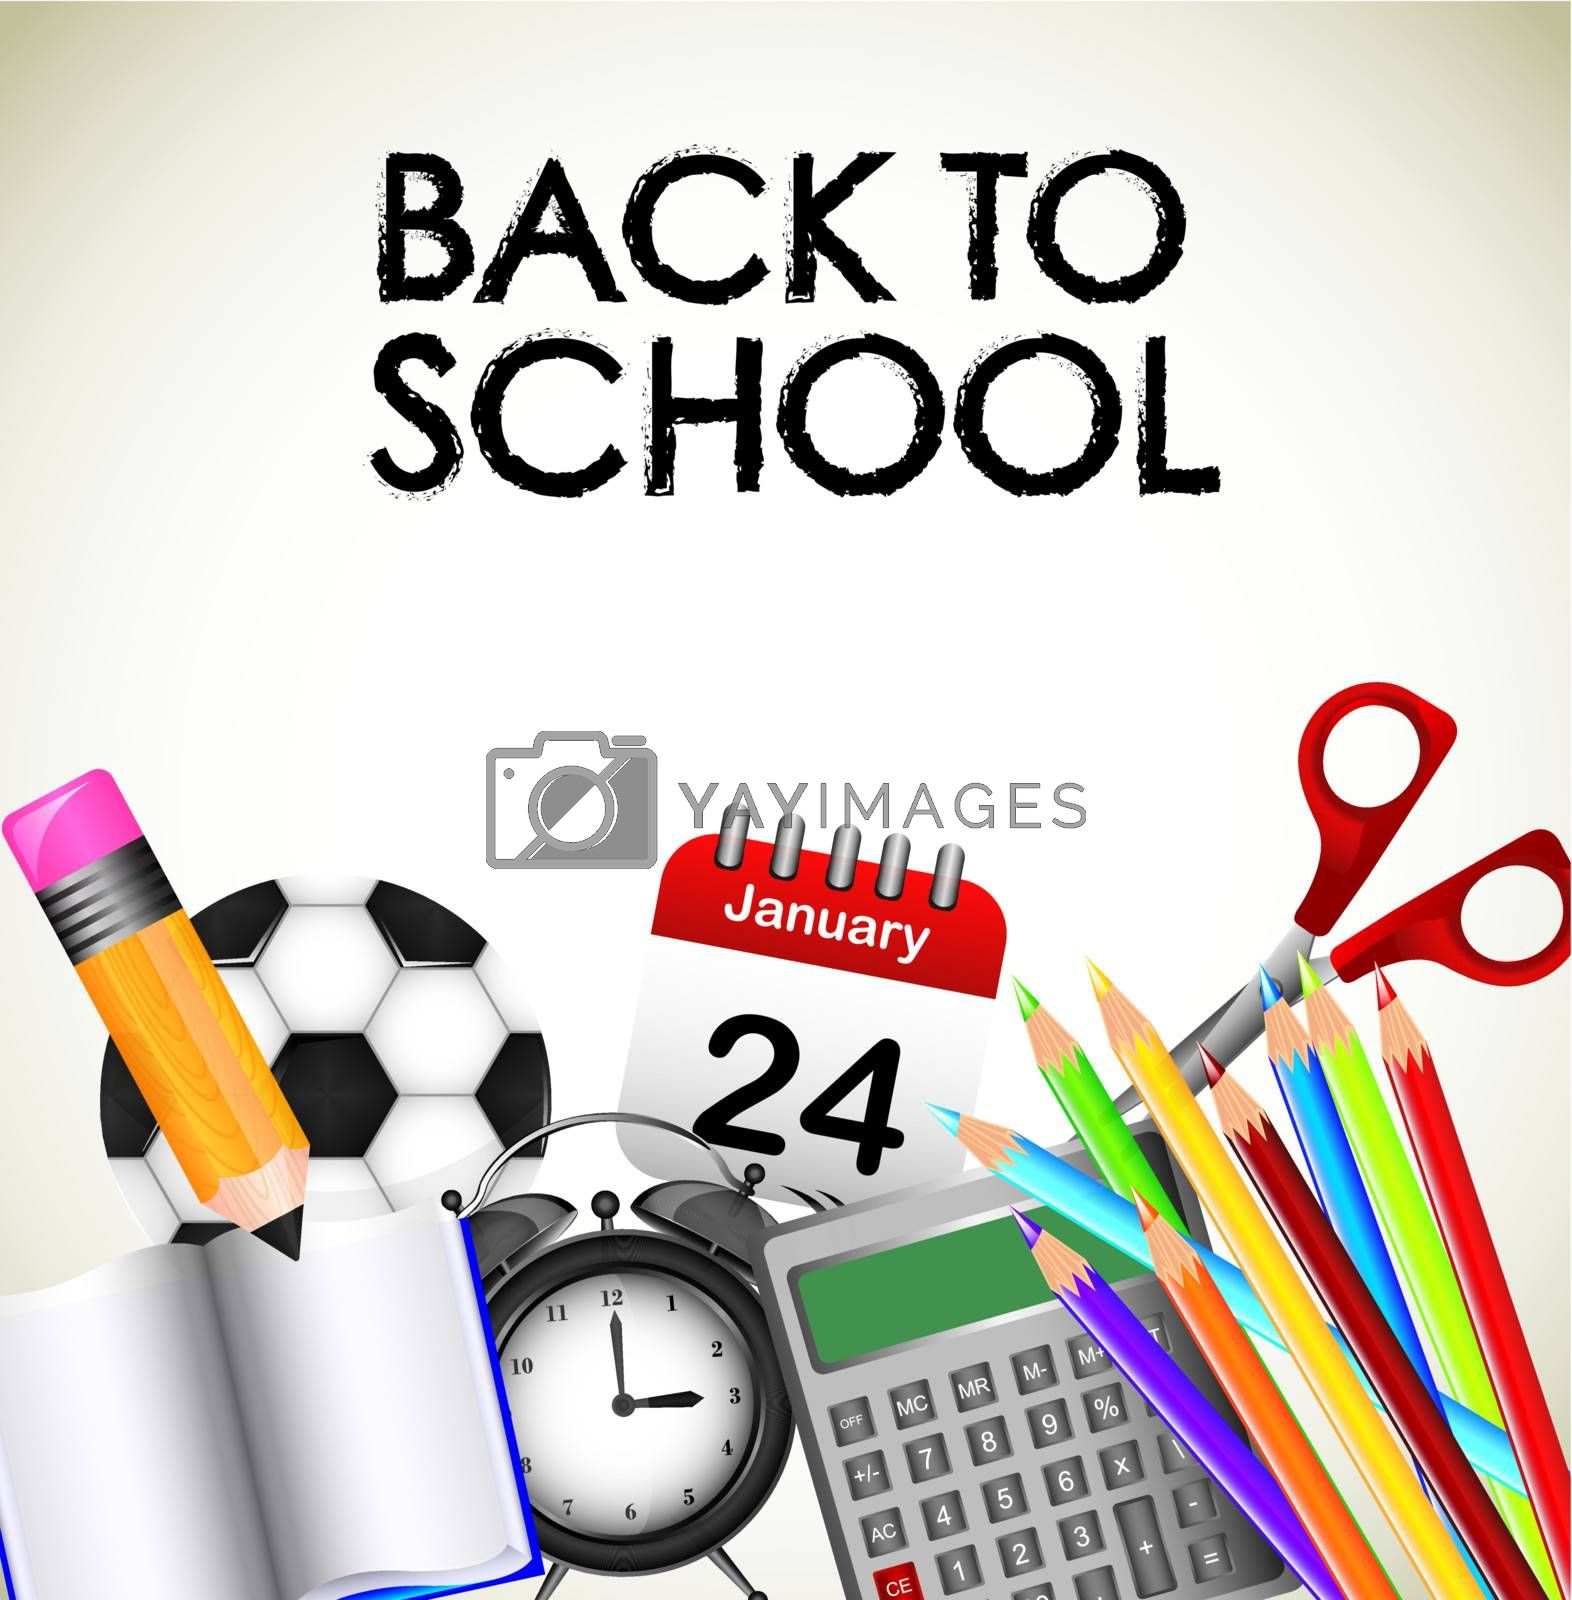 Back to school icons over white background